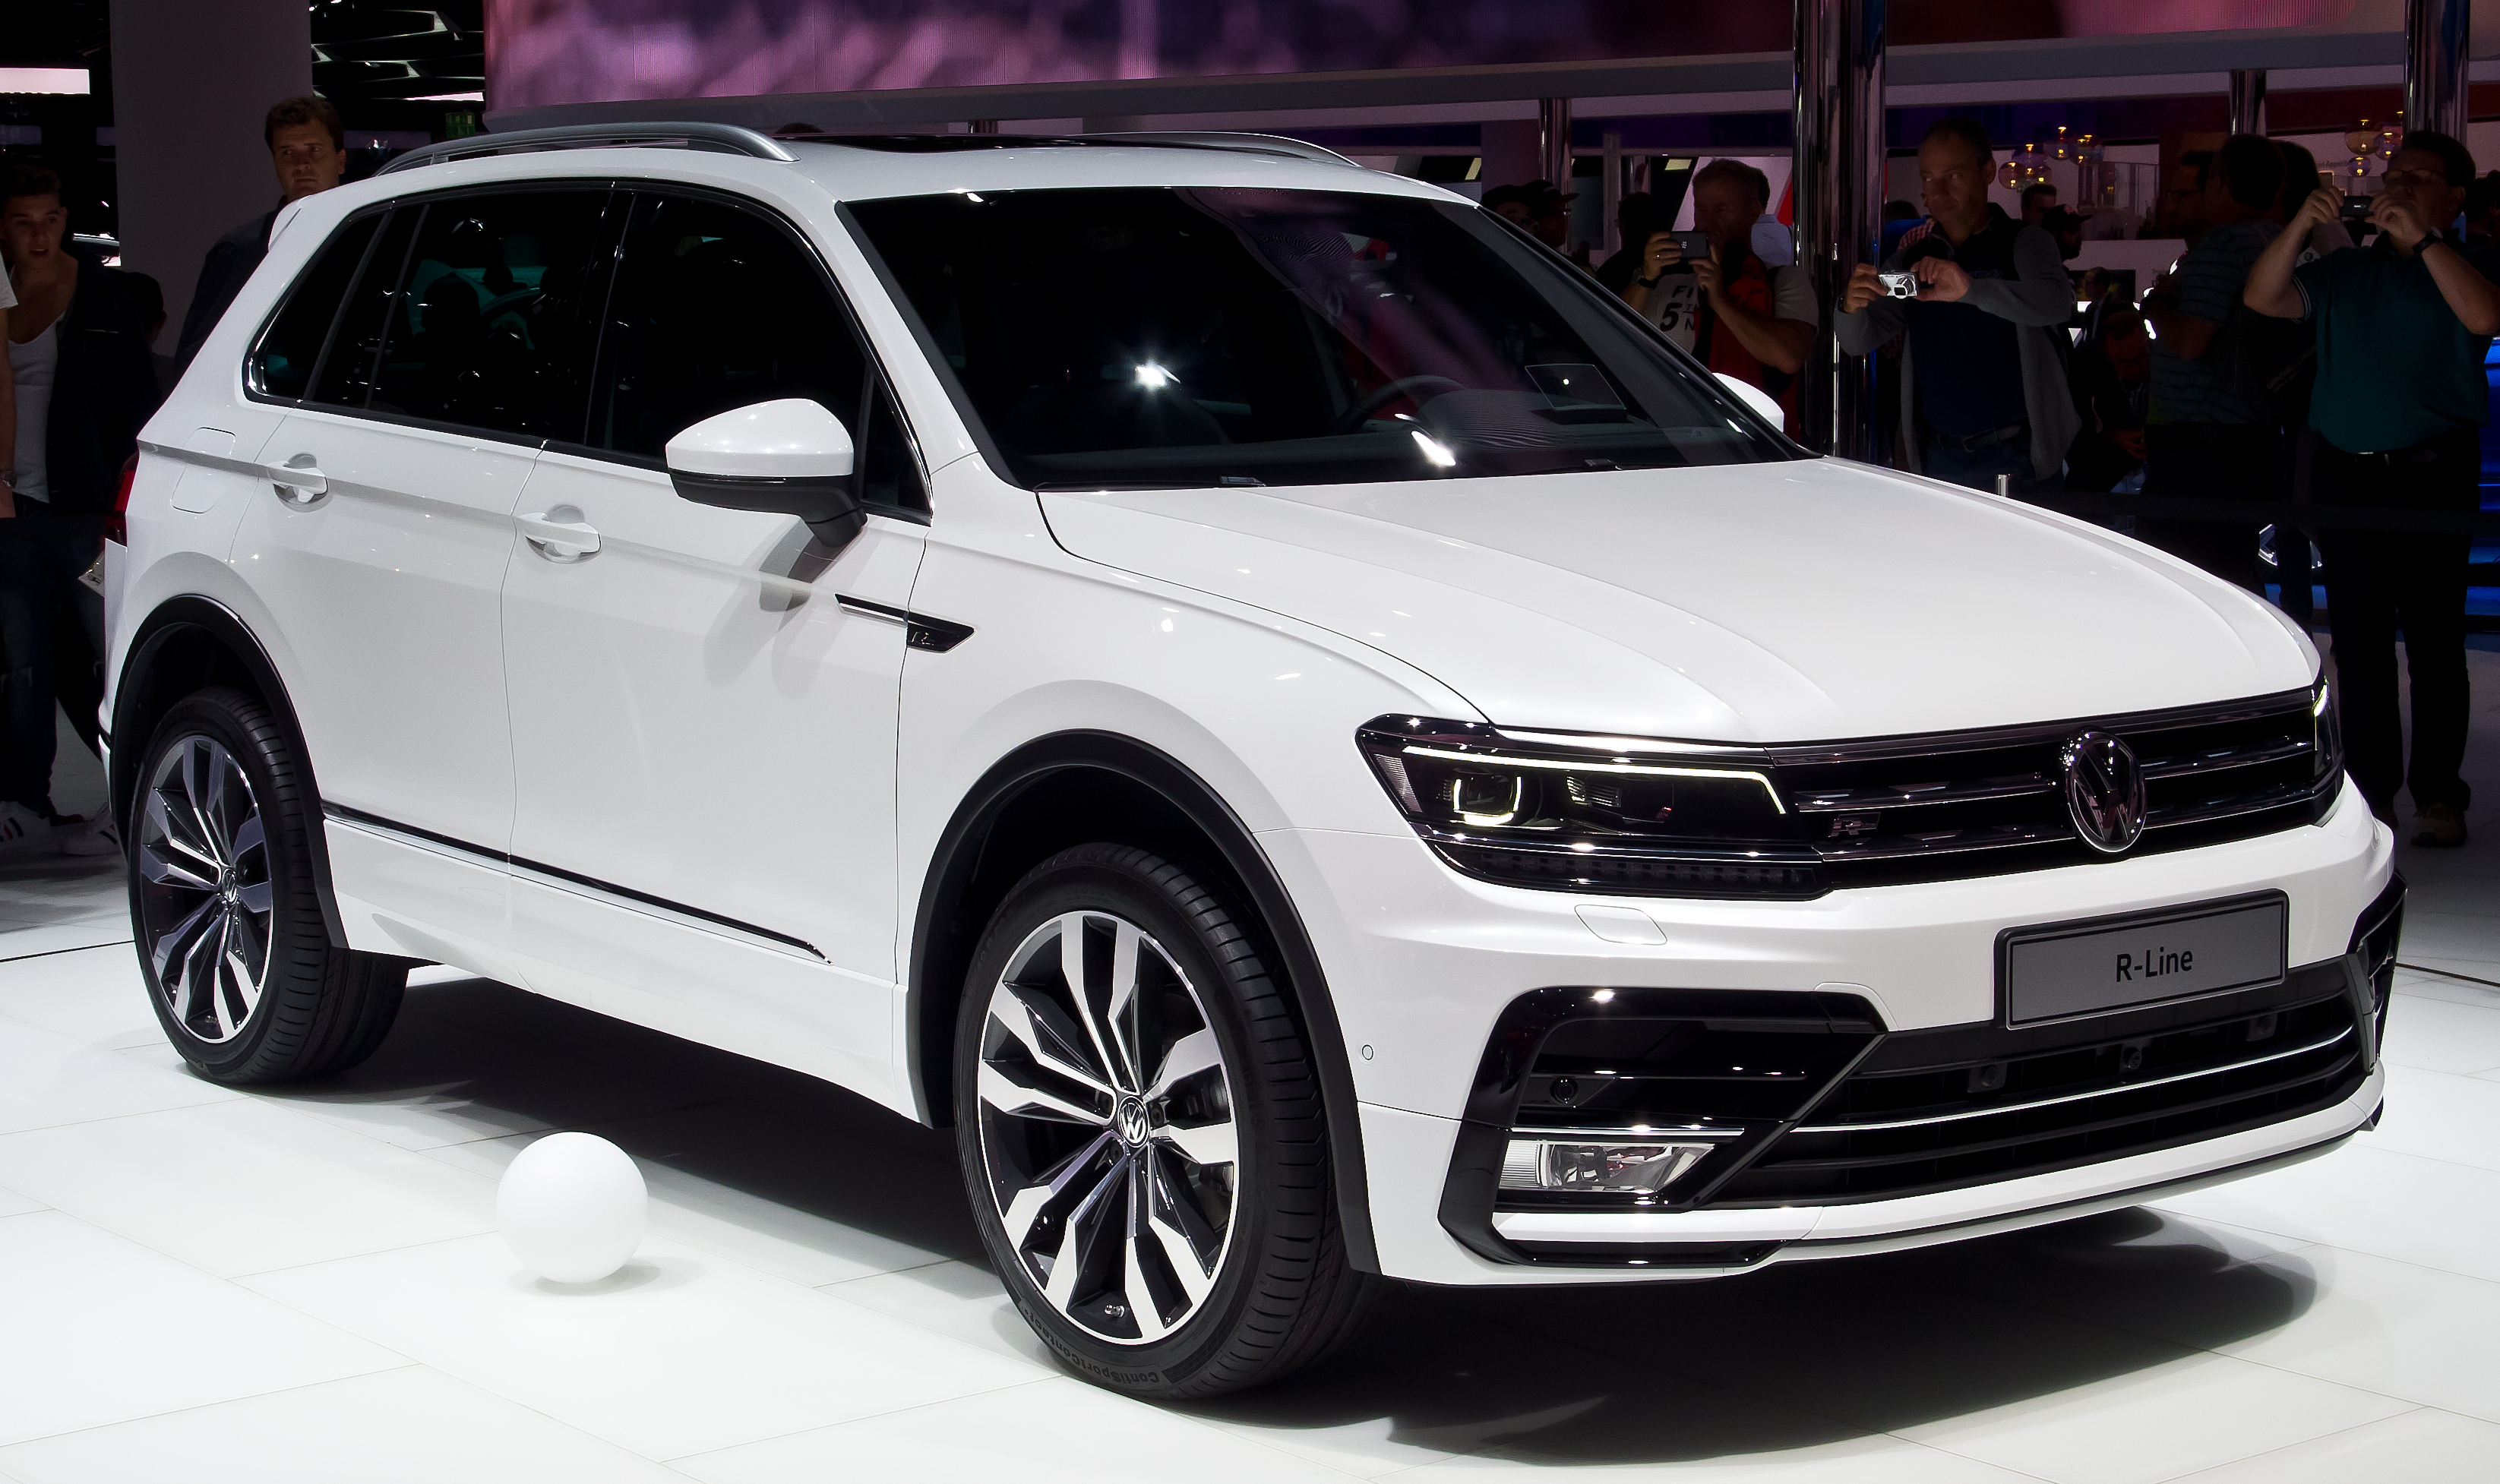 datei vw tiguan 2 0 tdi 4motion r line ii frontansicht 19 september 2015. Black Bedroom Furniture Sets. Home Design Ideas